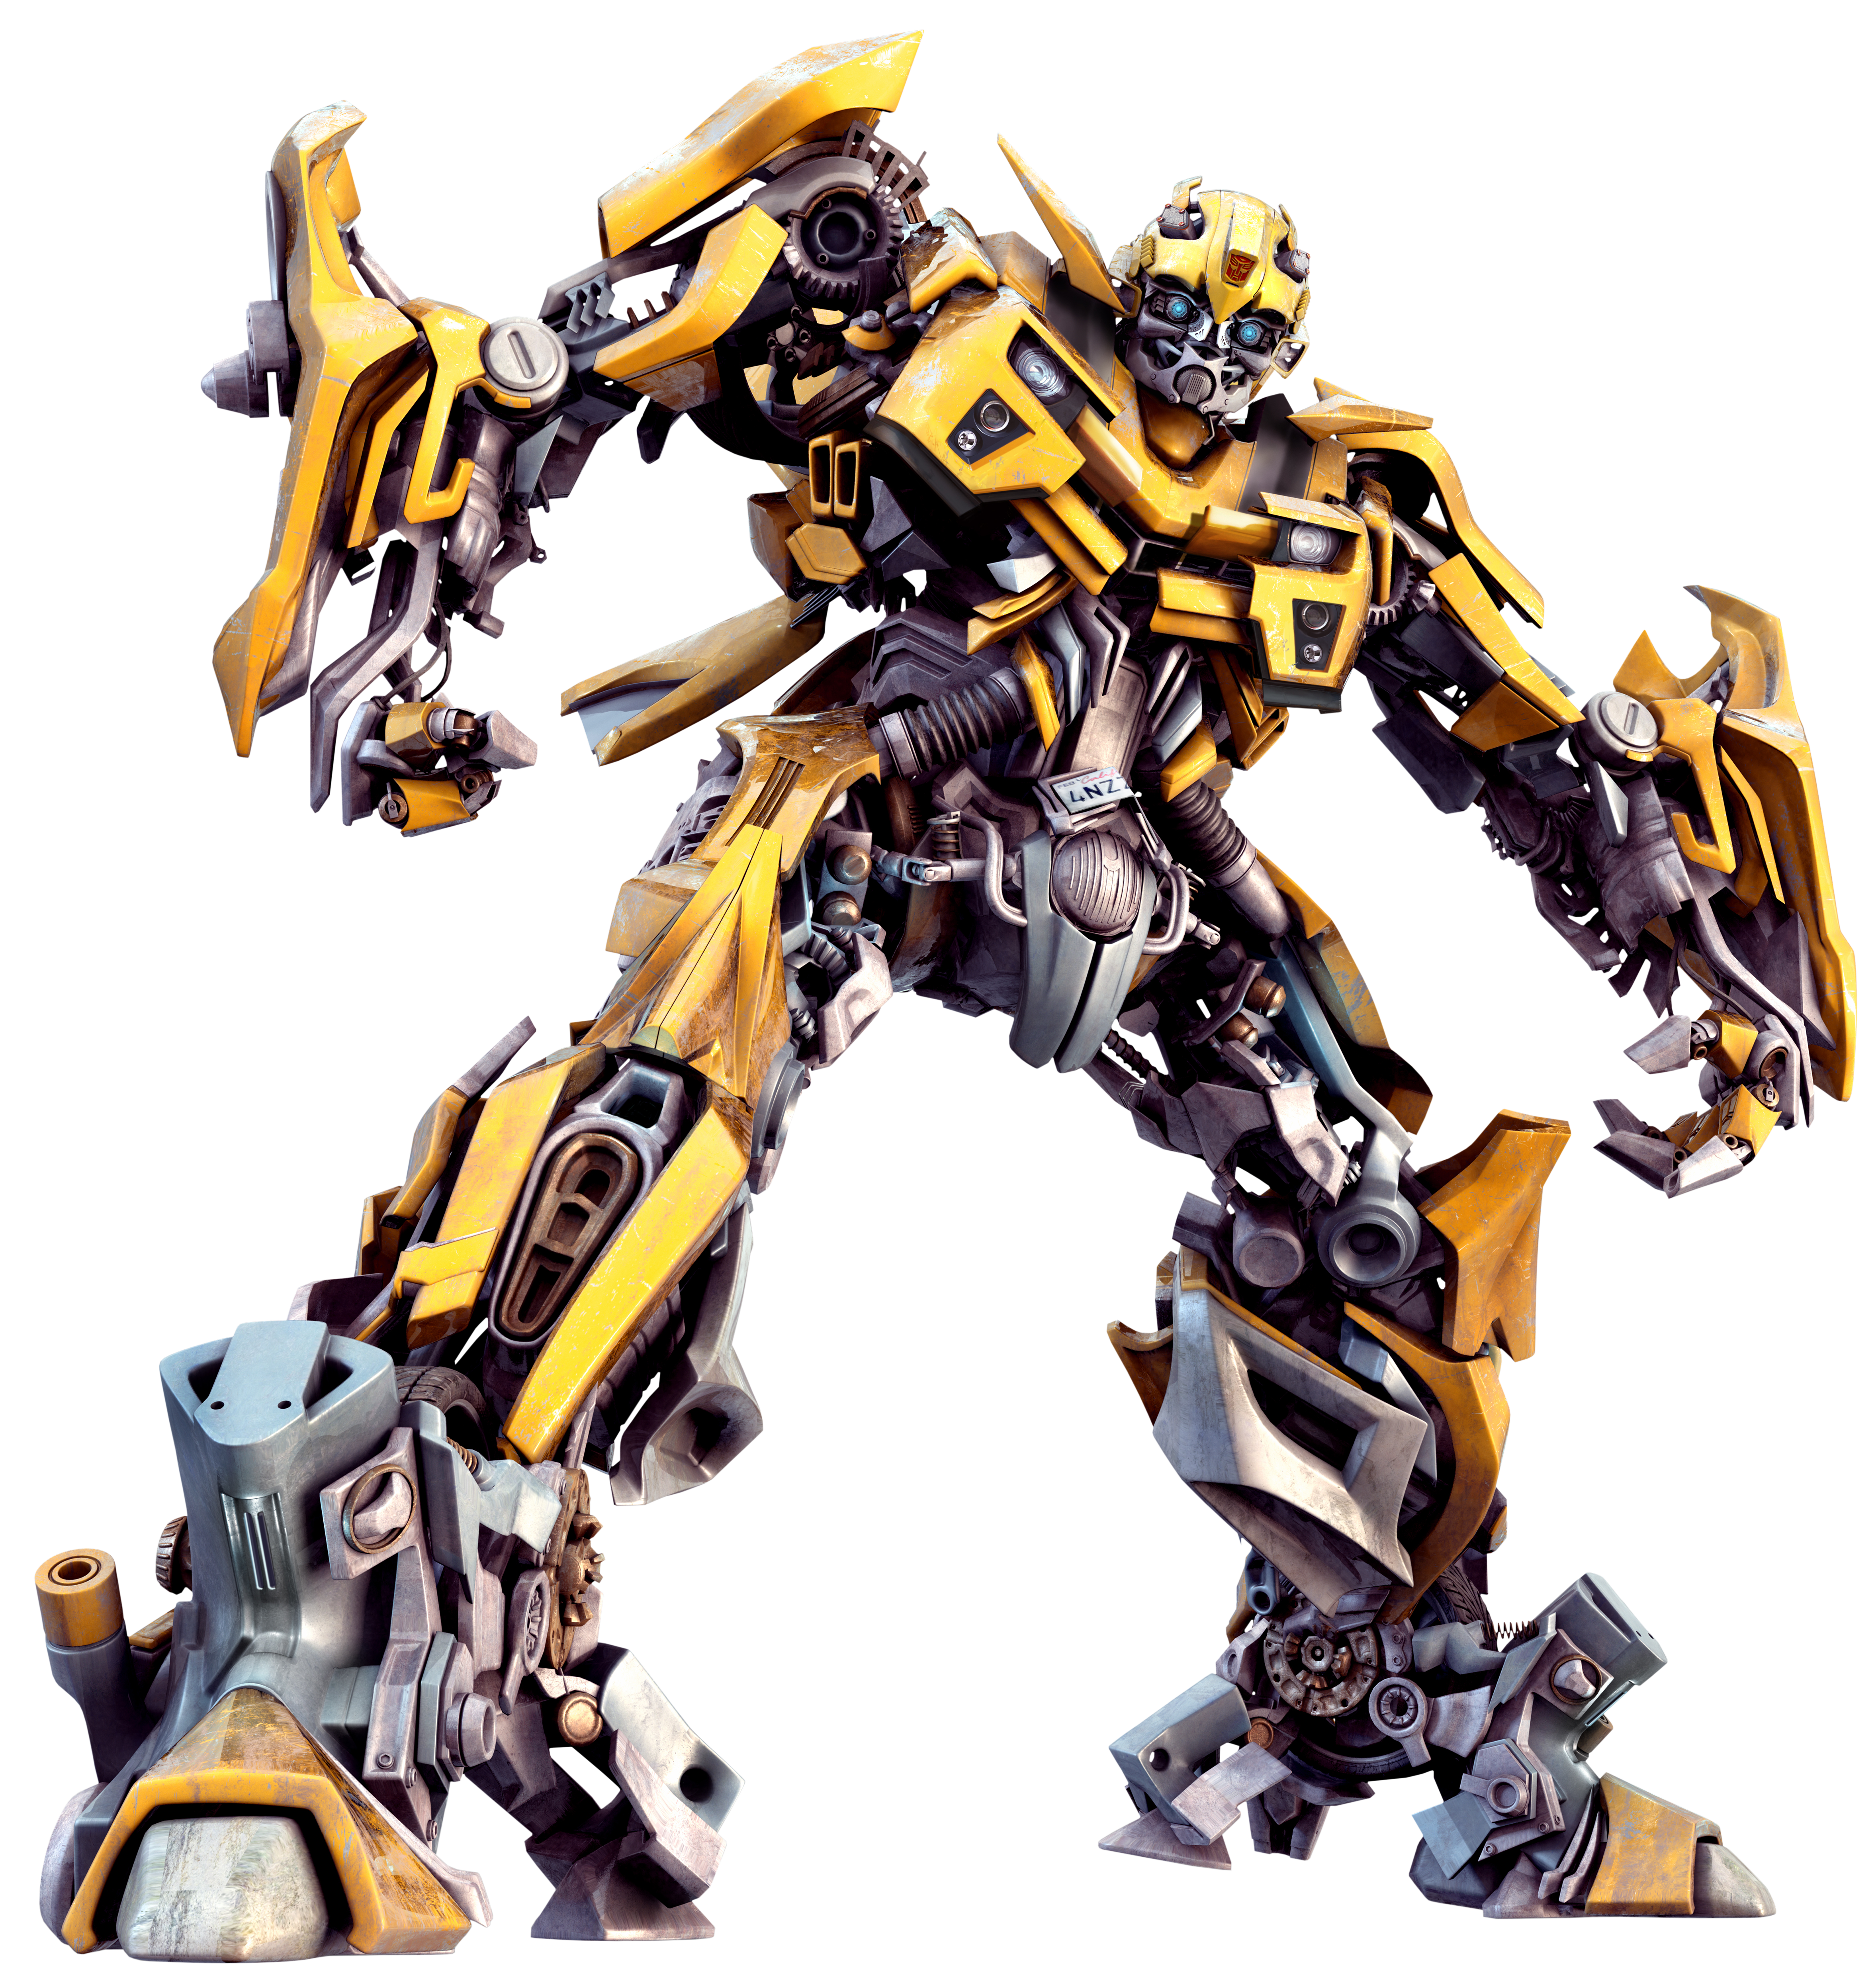 Transformers Bumblebee Png